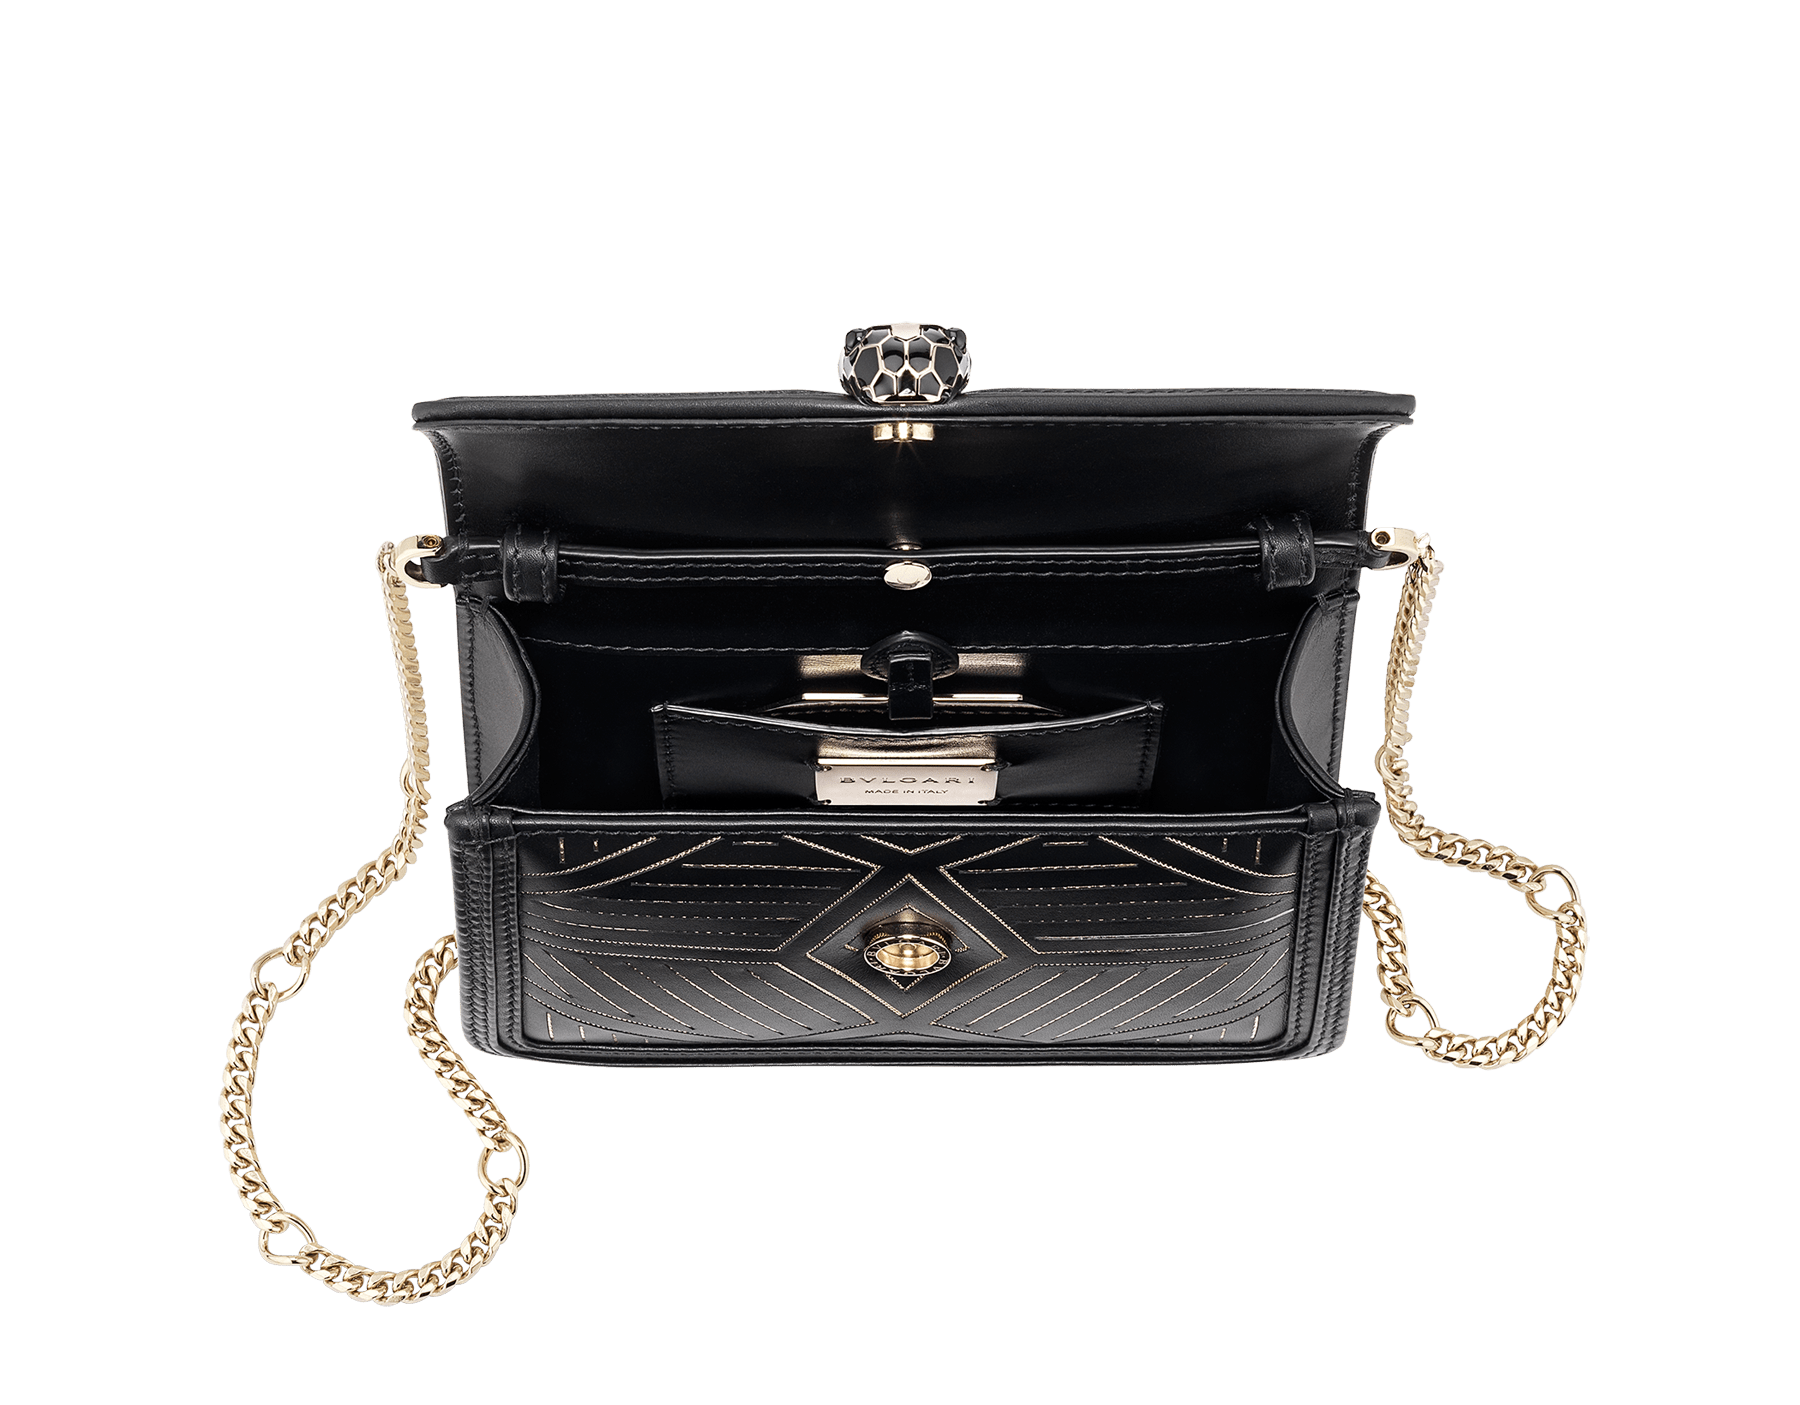 """Serpenti Diamond Blast"" shoulder bag in white agate calf leather, featuring a Whispy Chain motif in light gold finishing. Iconic snakehead closure in light gold plated brass enriched with black and white agate enamel and black onyx eyes. 987-WC image 4"